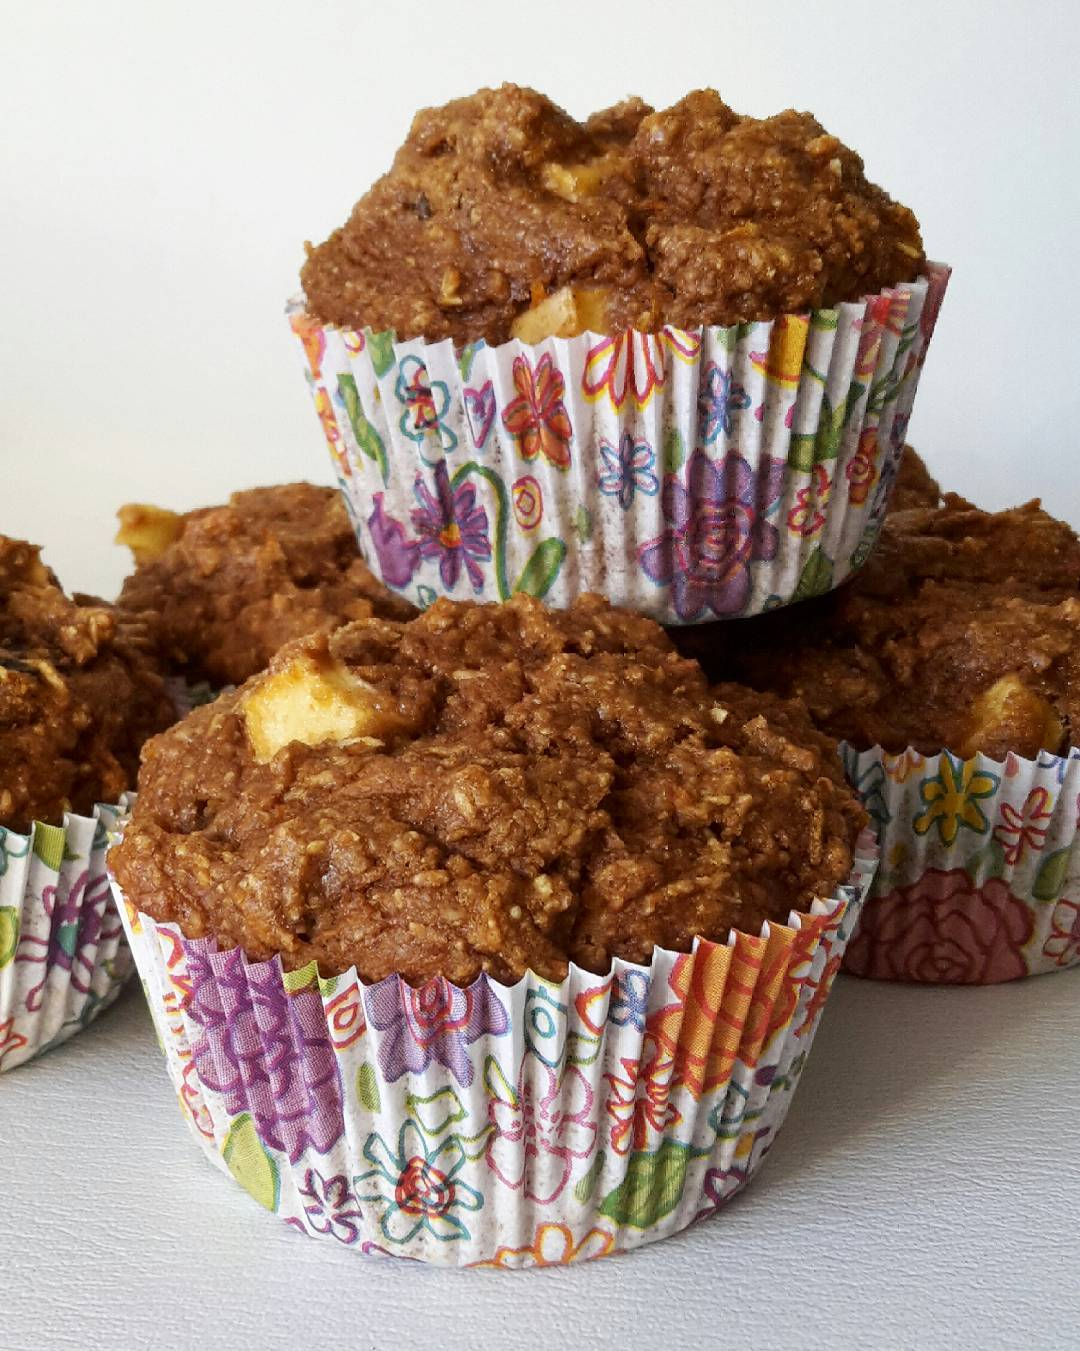 morning glory bran muffins by @claras_keksfabrik